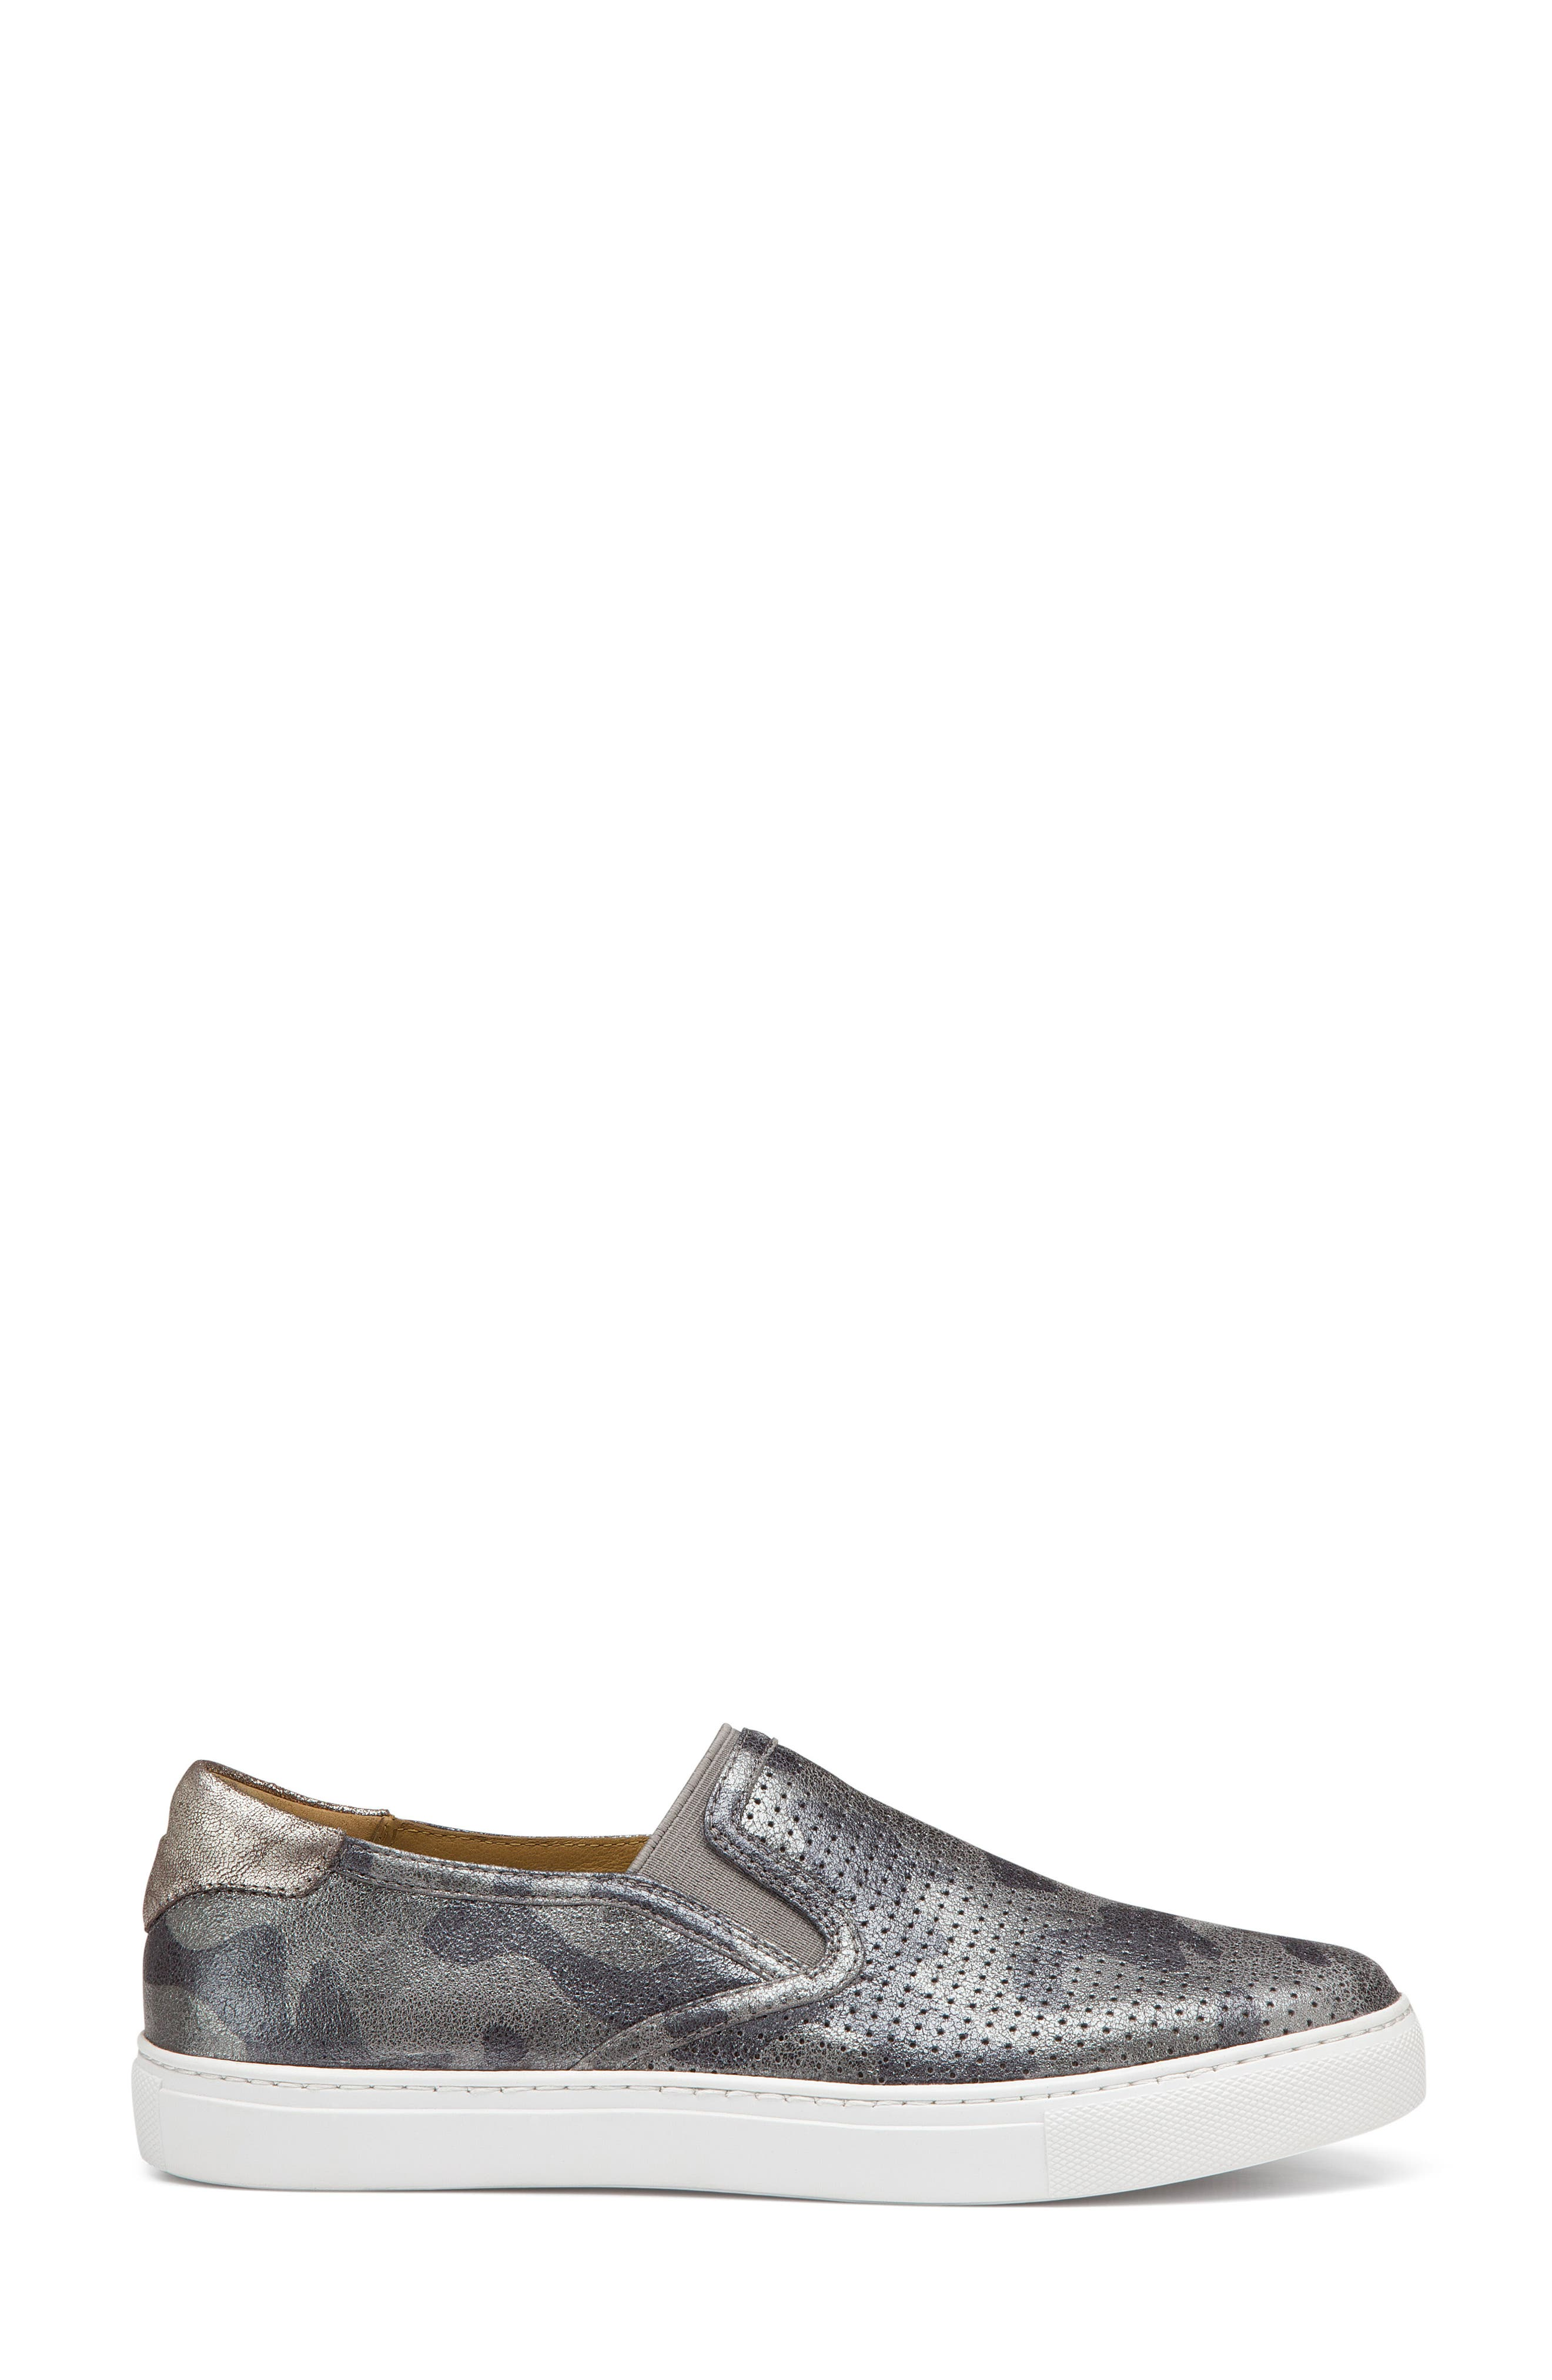 Lillian Water Resistant Slip-On Sneaker,                             Alternate thumbnail 3, color,                             PEWTER CAMO LEATHER